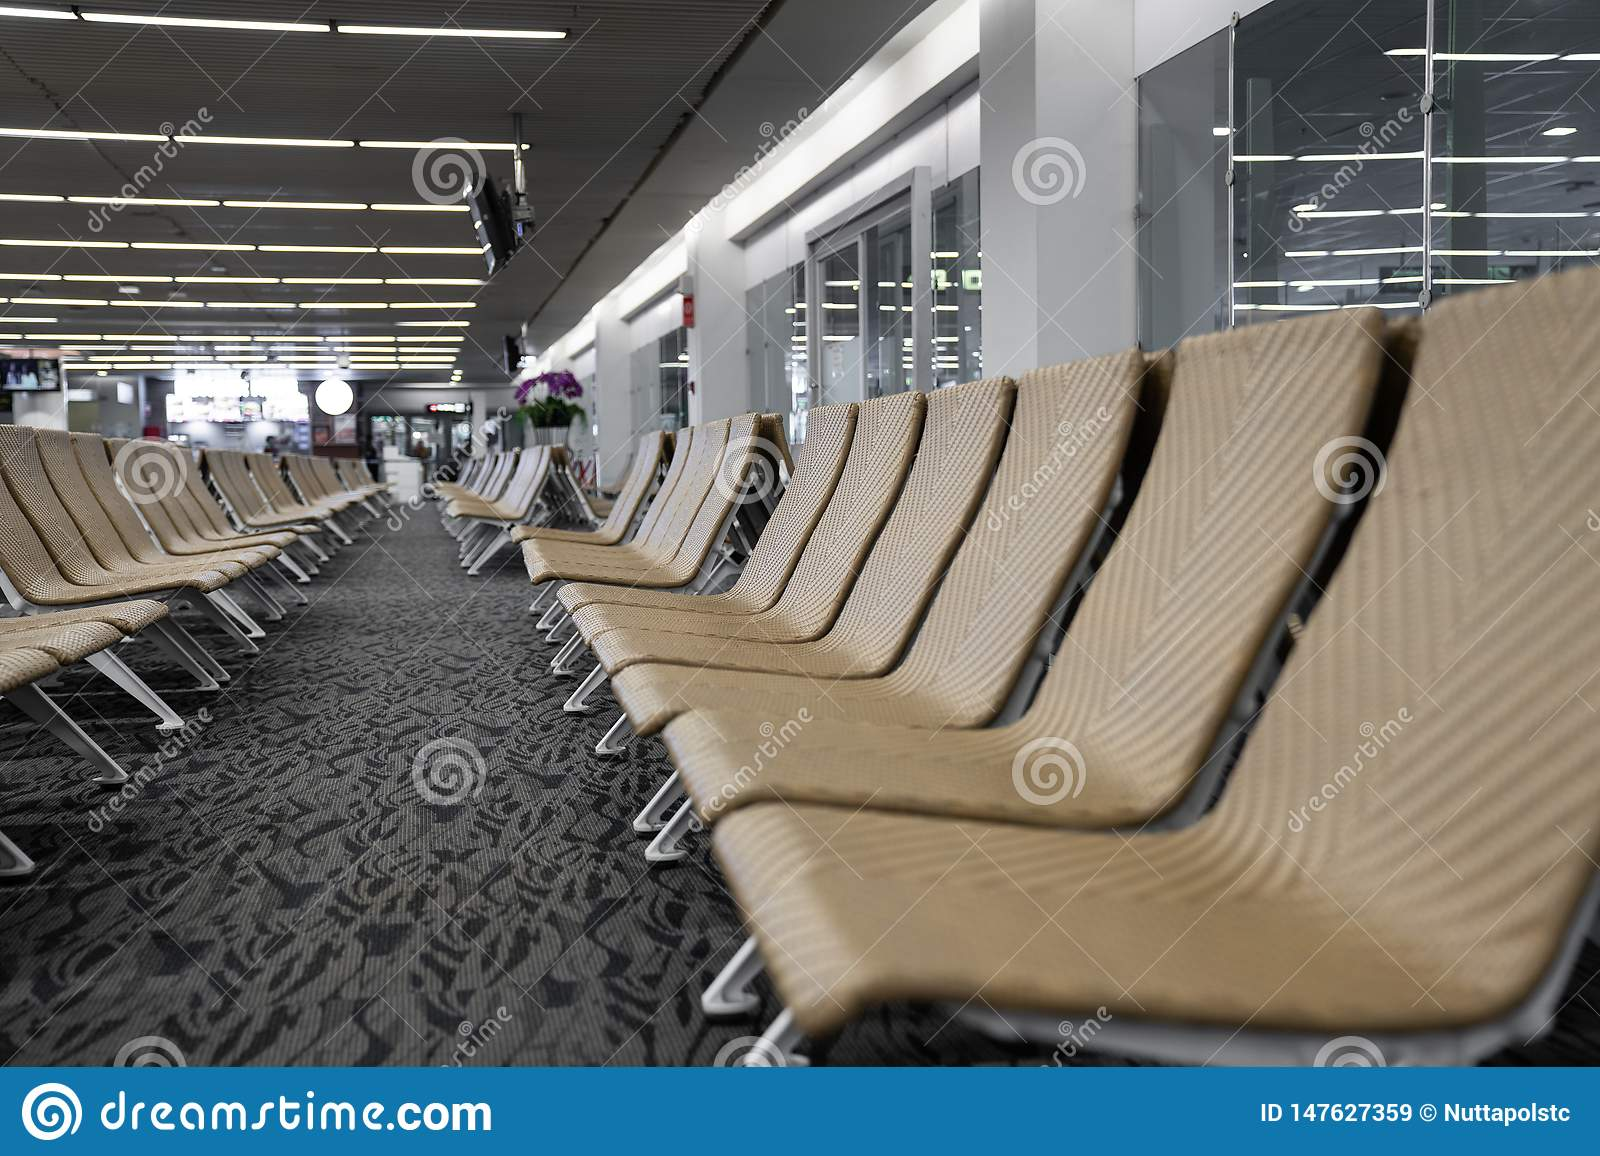 Close up of empty artificial rattan seater in the airport / waiting lounge airport / artificial rattan material / travel passenger